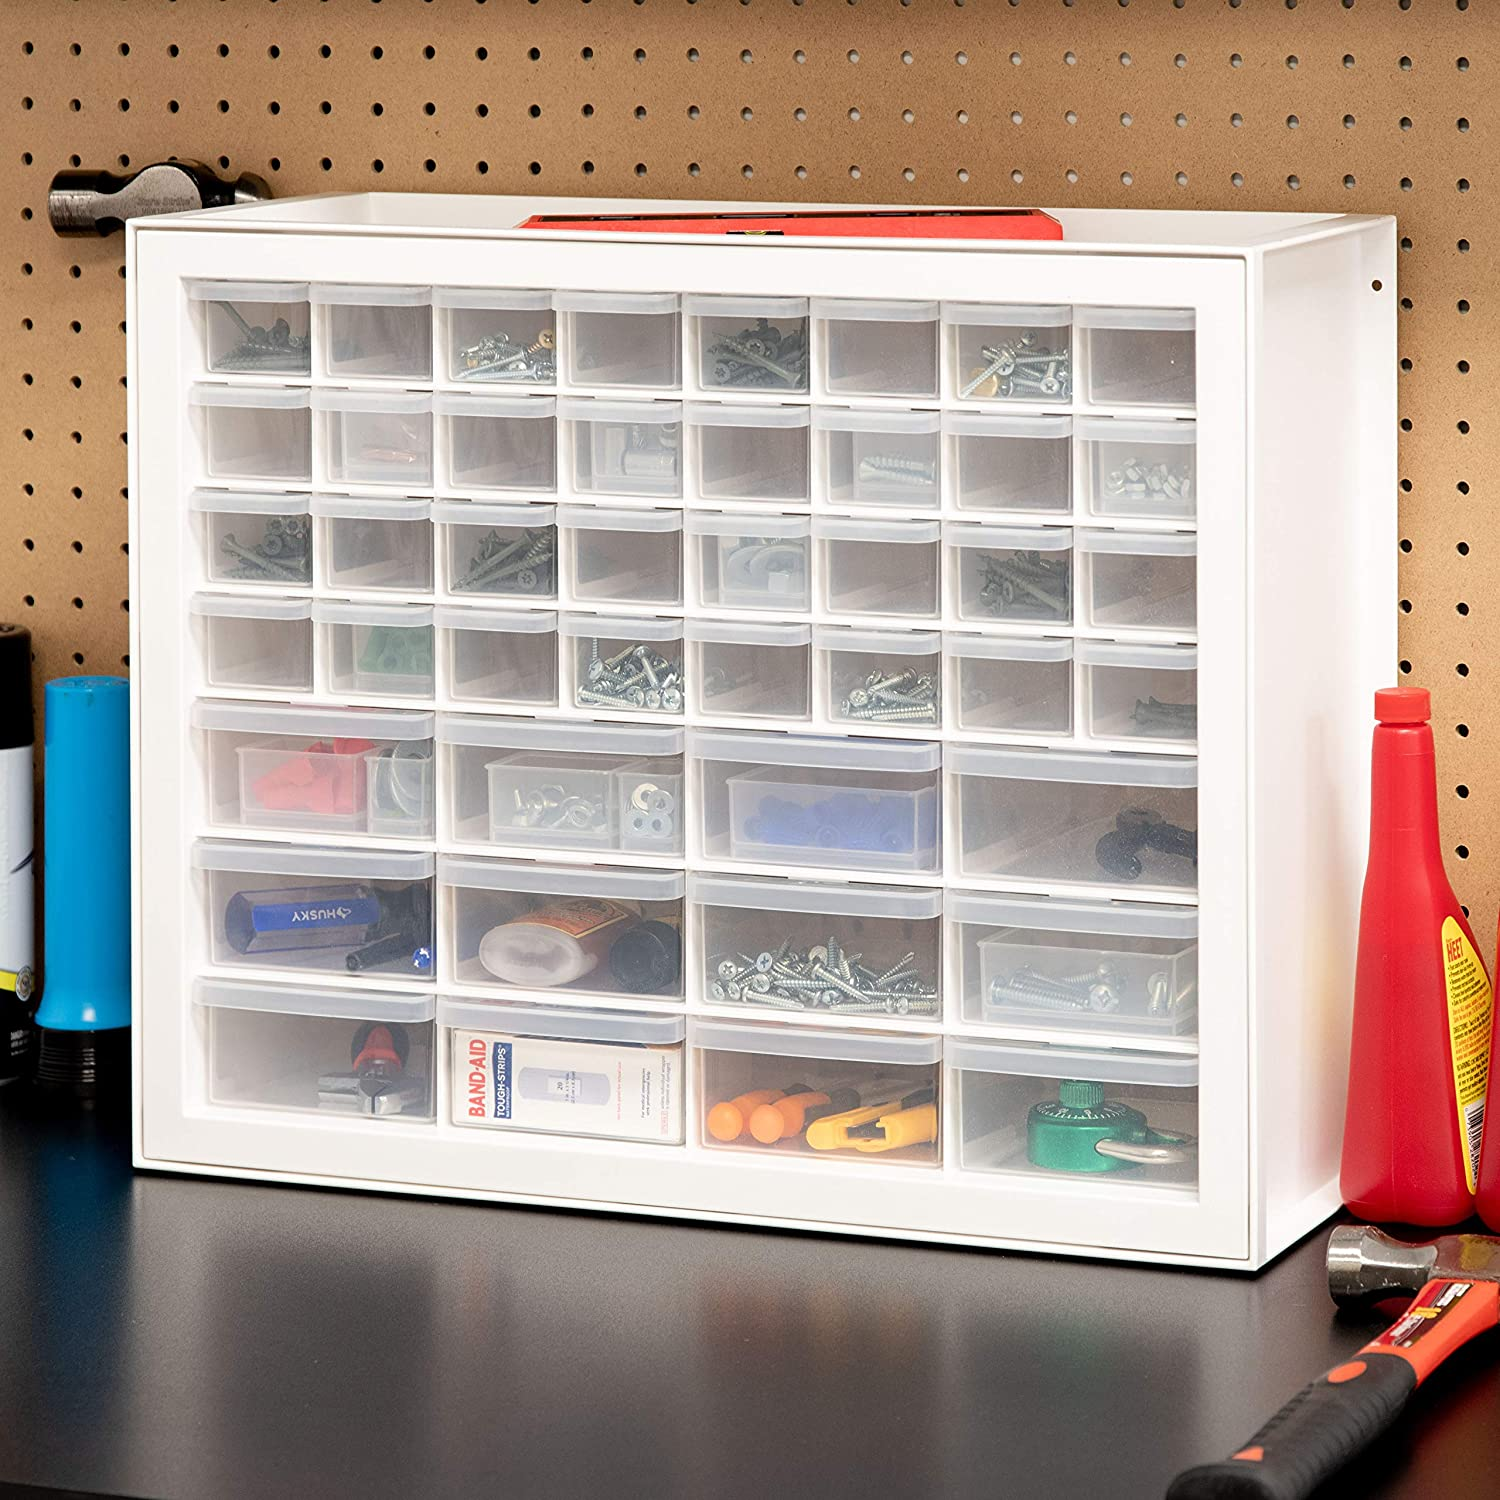 IRIS USA Inc DPC-44 44 Drawer Sewing And Craft Parts Cabinet 19.5 Inch By 15.5 Inch By 7 Inch White